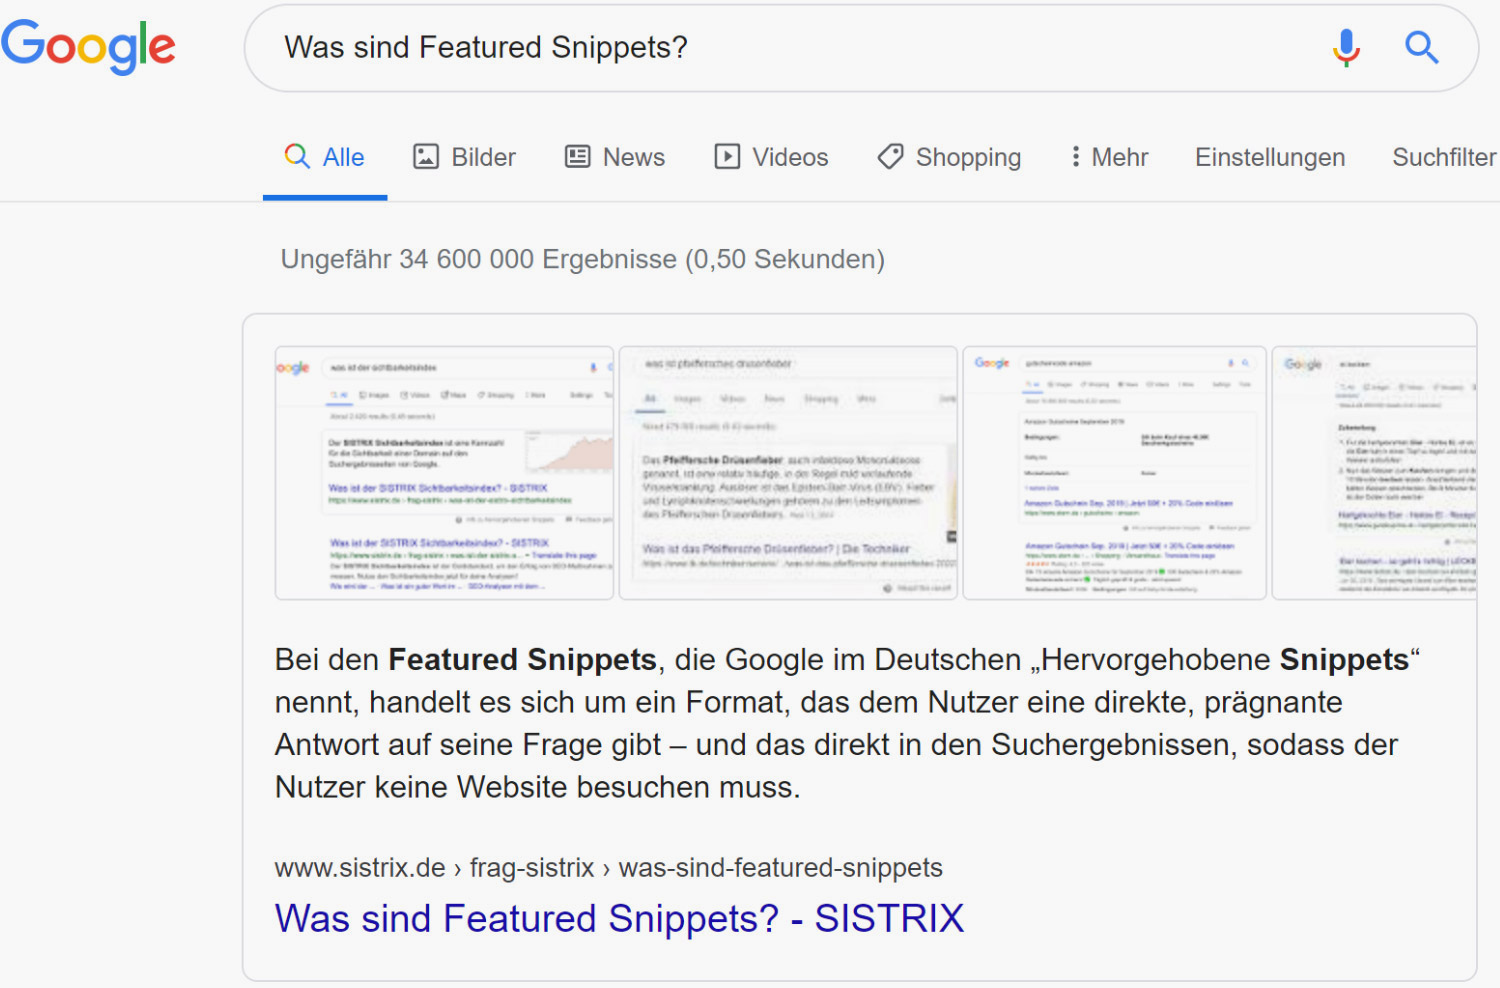 Strukturierte Daten: Featured Snipped